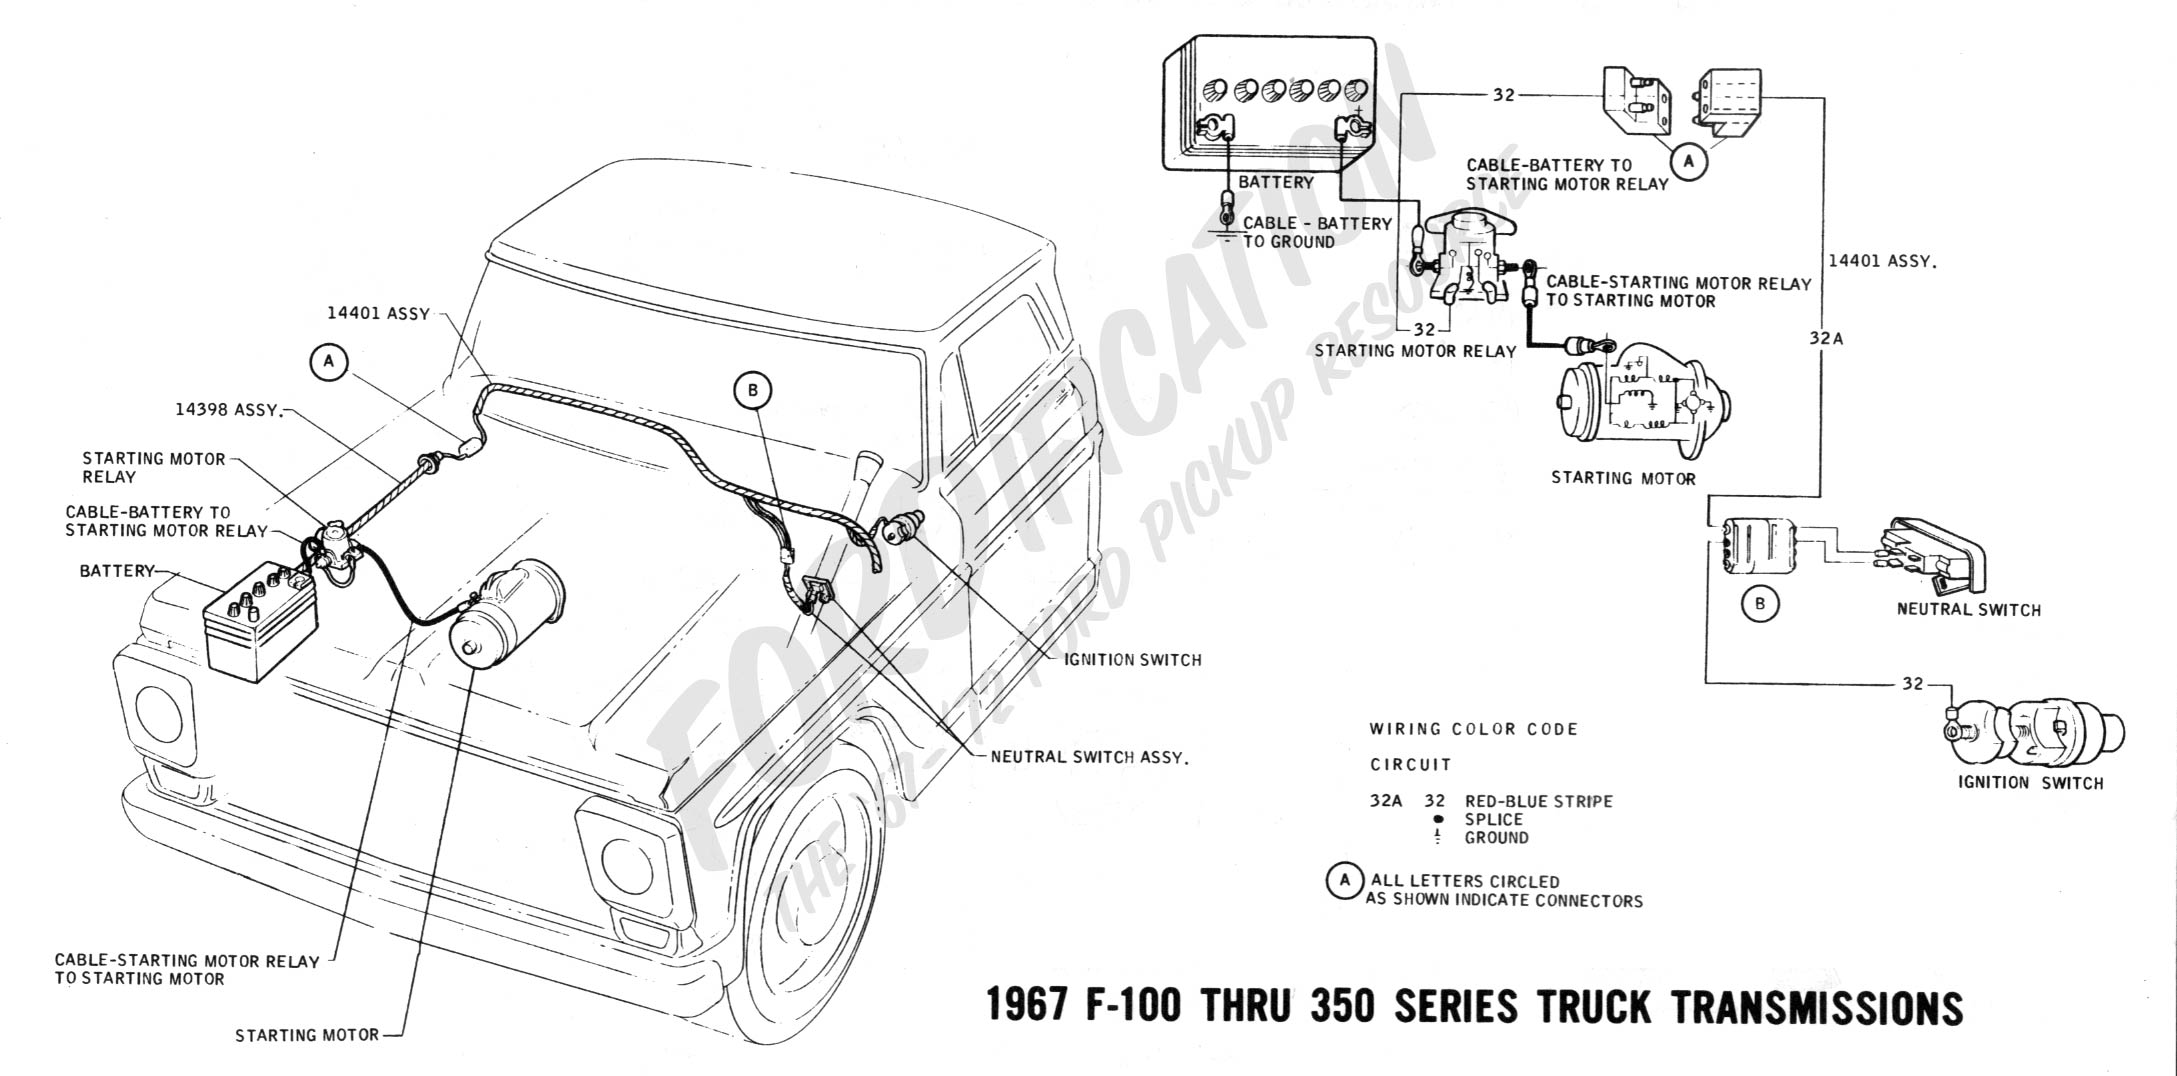 F800 Brake System. Wiring. Wiring Diagram Images